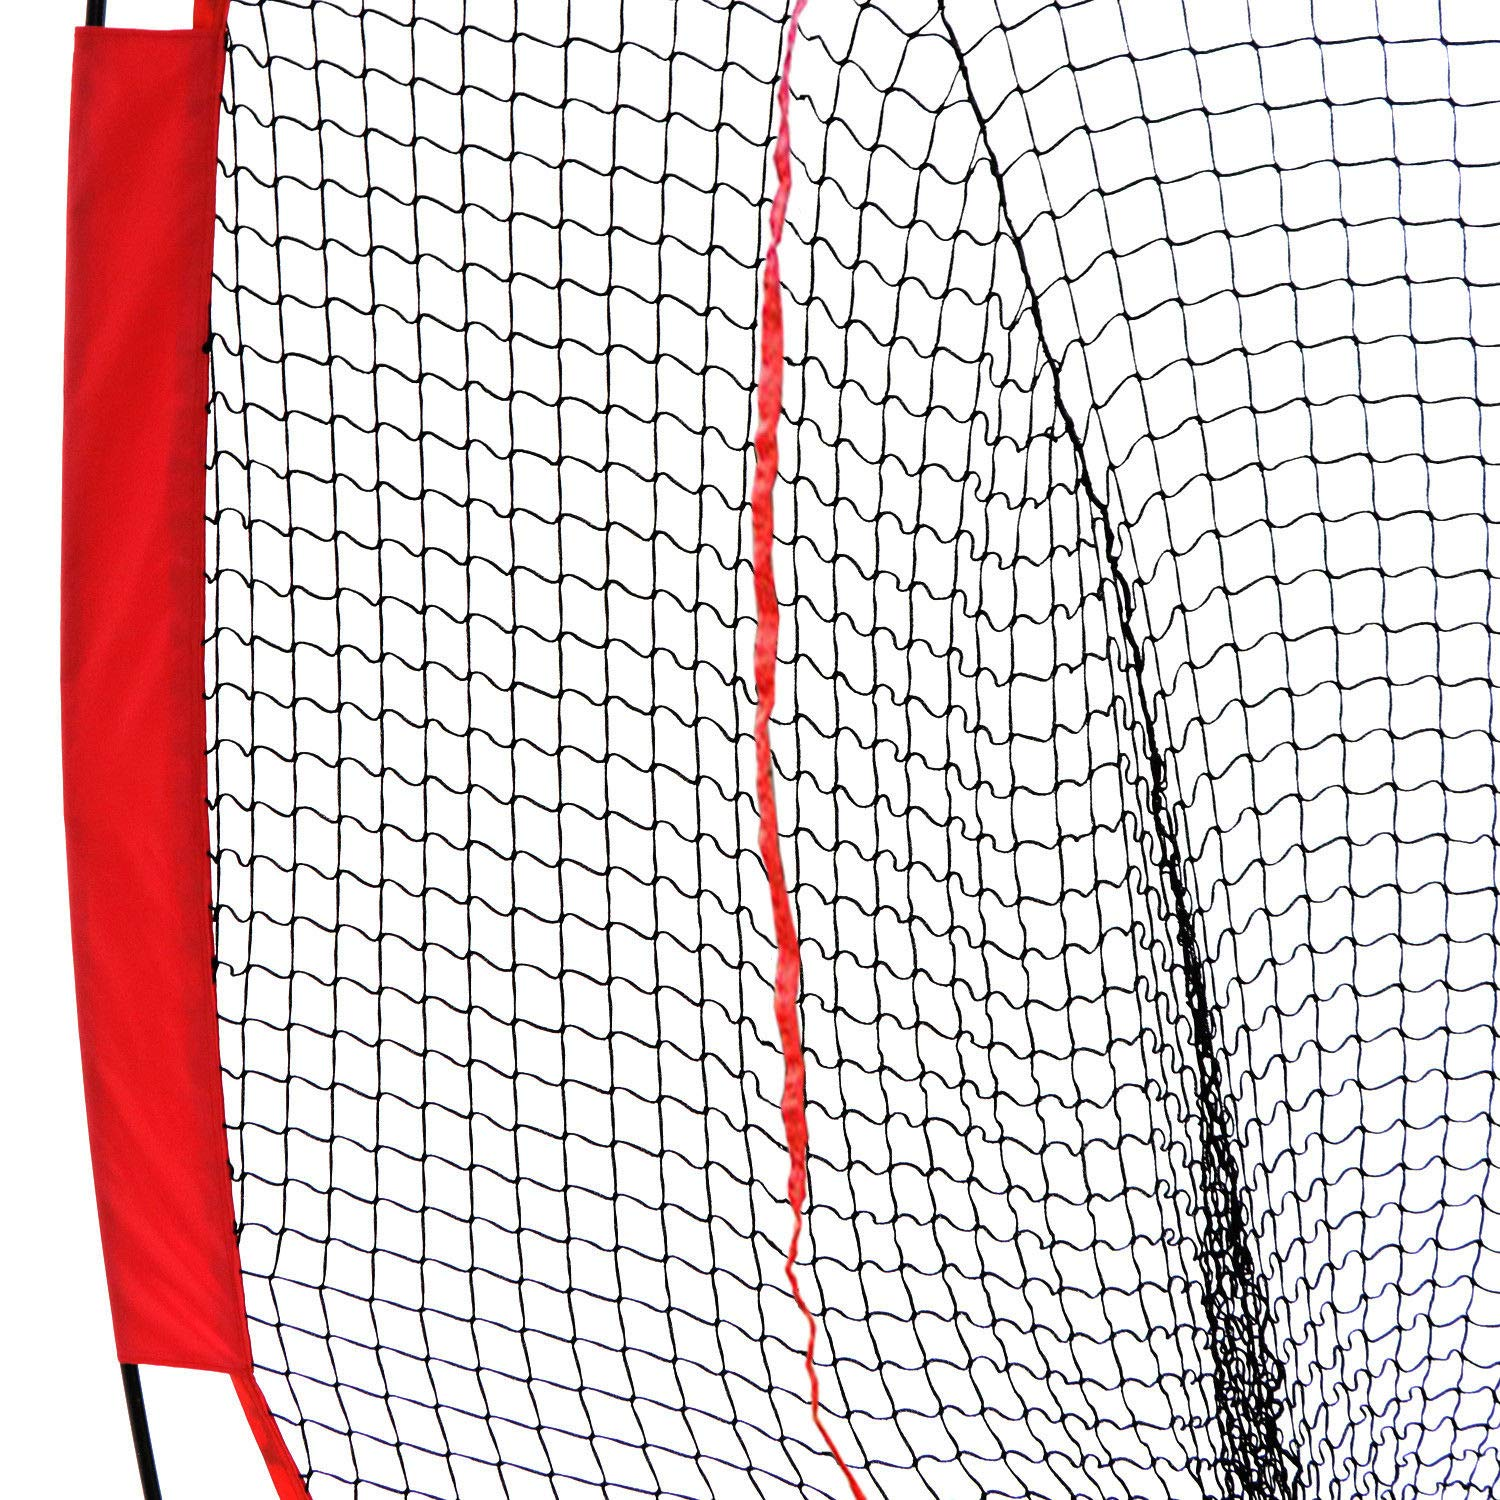 ZENY 7 x 7 5 x 5 Baseball Softball Practice Hitting Pitching Batting Net with Bow Frame,Carry Bag,Great for All Skill Levels Foldable Ball Caddy